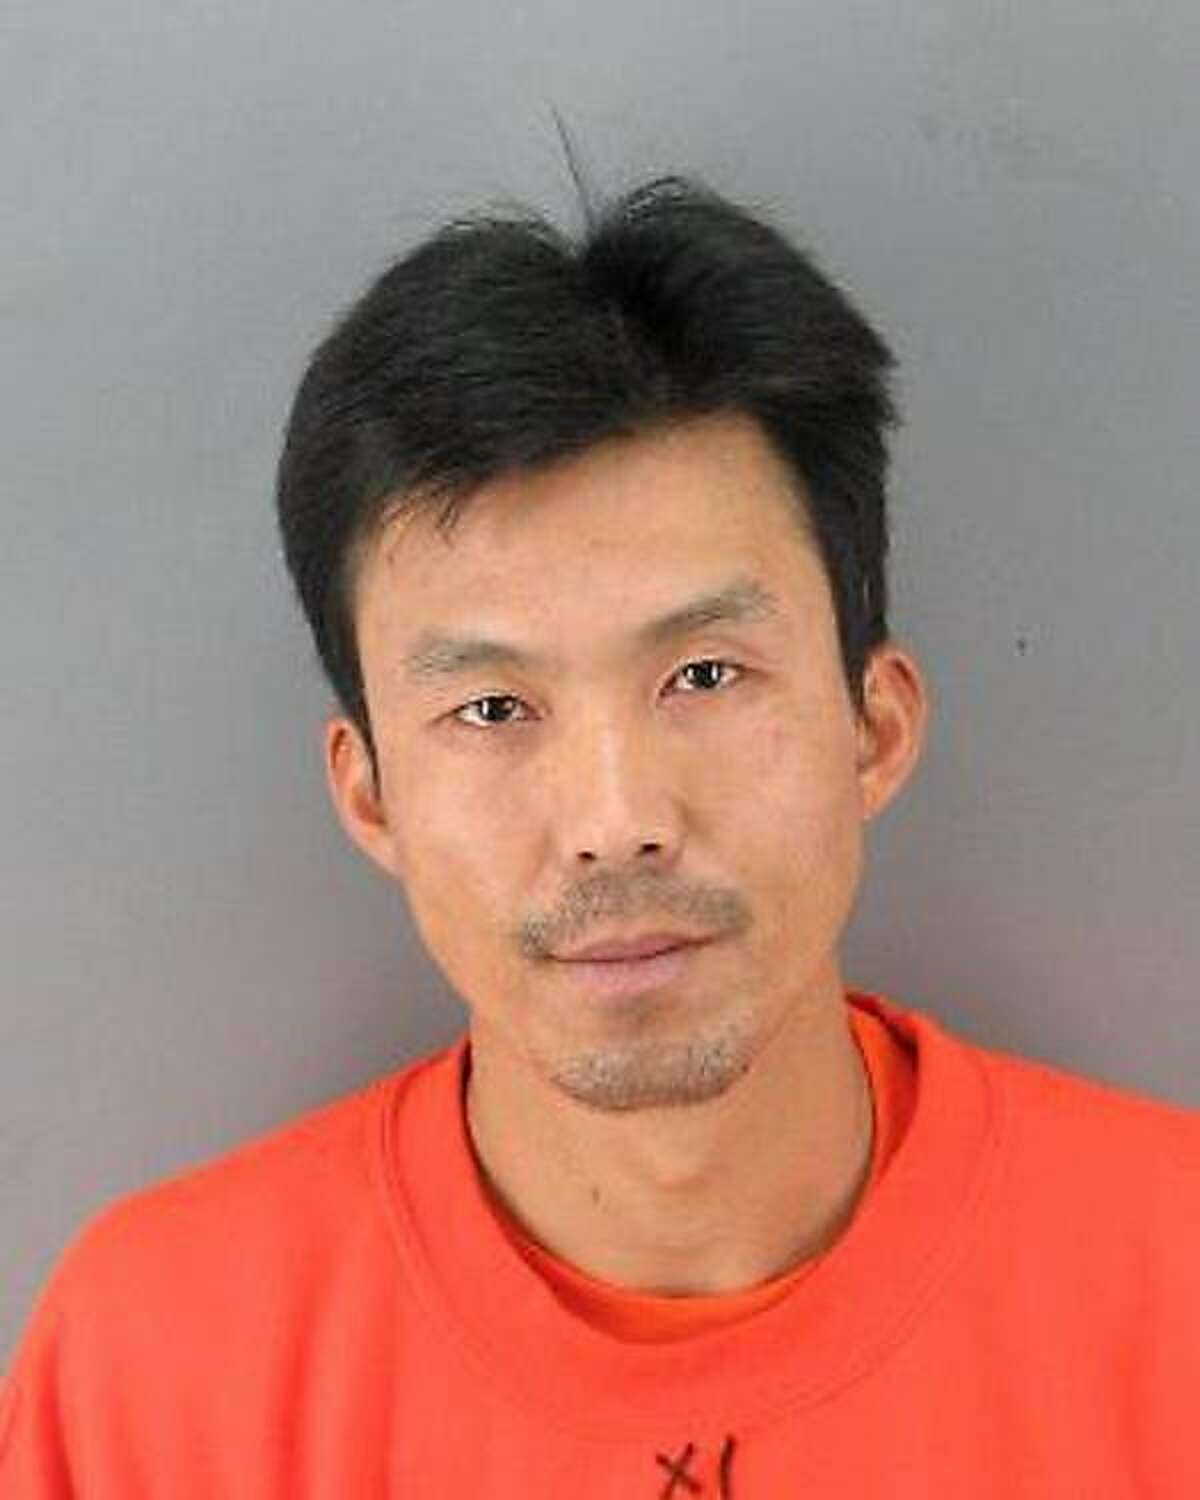 This booking photo provided by the San Francisco Police Dept. shows Binh Thai Luc, 35, who was arrested Sunday, March 25 2012 and is being held on suspicion of five counts of murder. Luc was taken into custody in the murders of five people inside a San Francisco home Friday, in a surprise twist after police initially hinted that it was a murder-suicide case. Investigators are sorting through a crime scene that they say is so complicated that they still can't identify all the victims three days after the gruesome killings. (AP Photo/San Francisco Police Dept.)